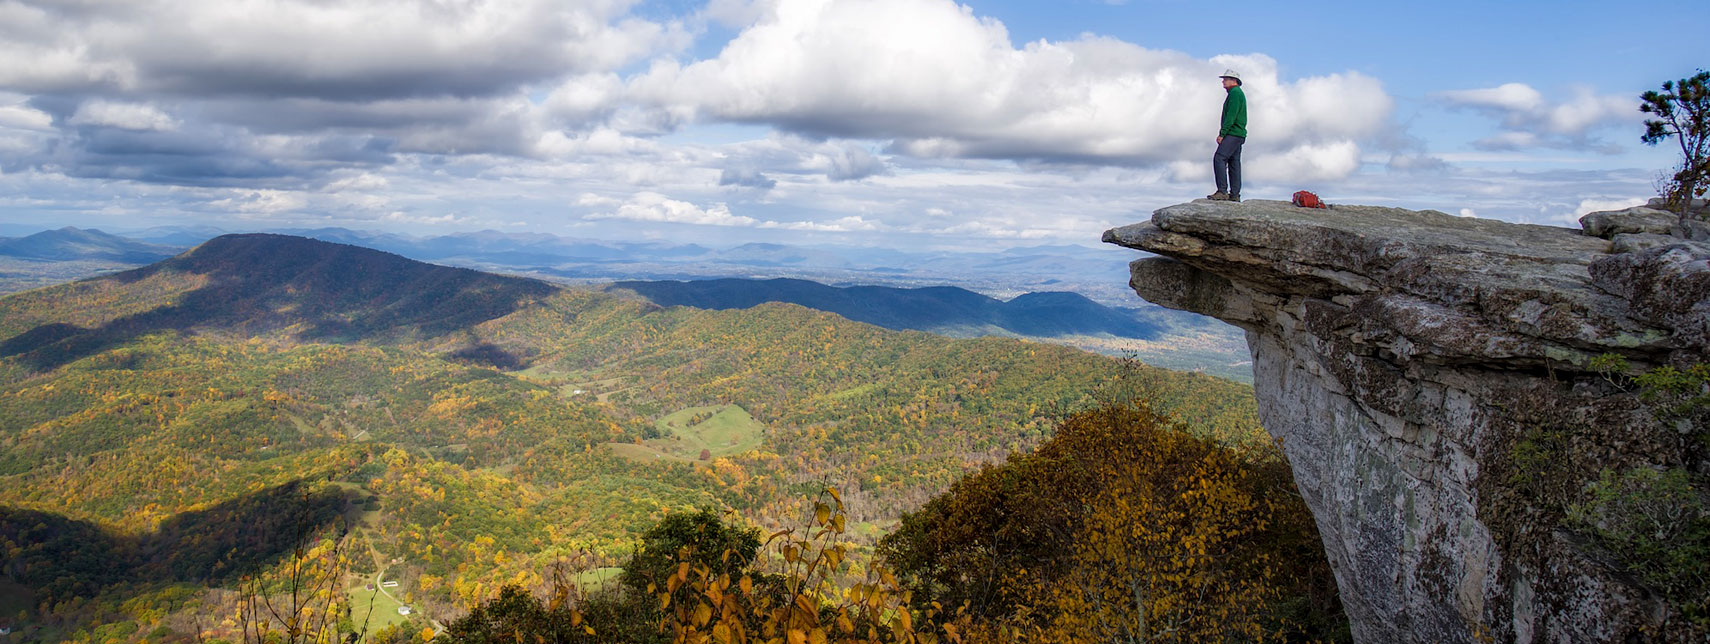 Catawba Valley from McAfee Knob in Virginia